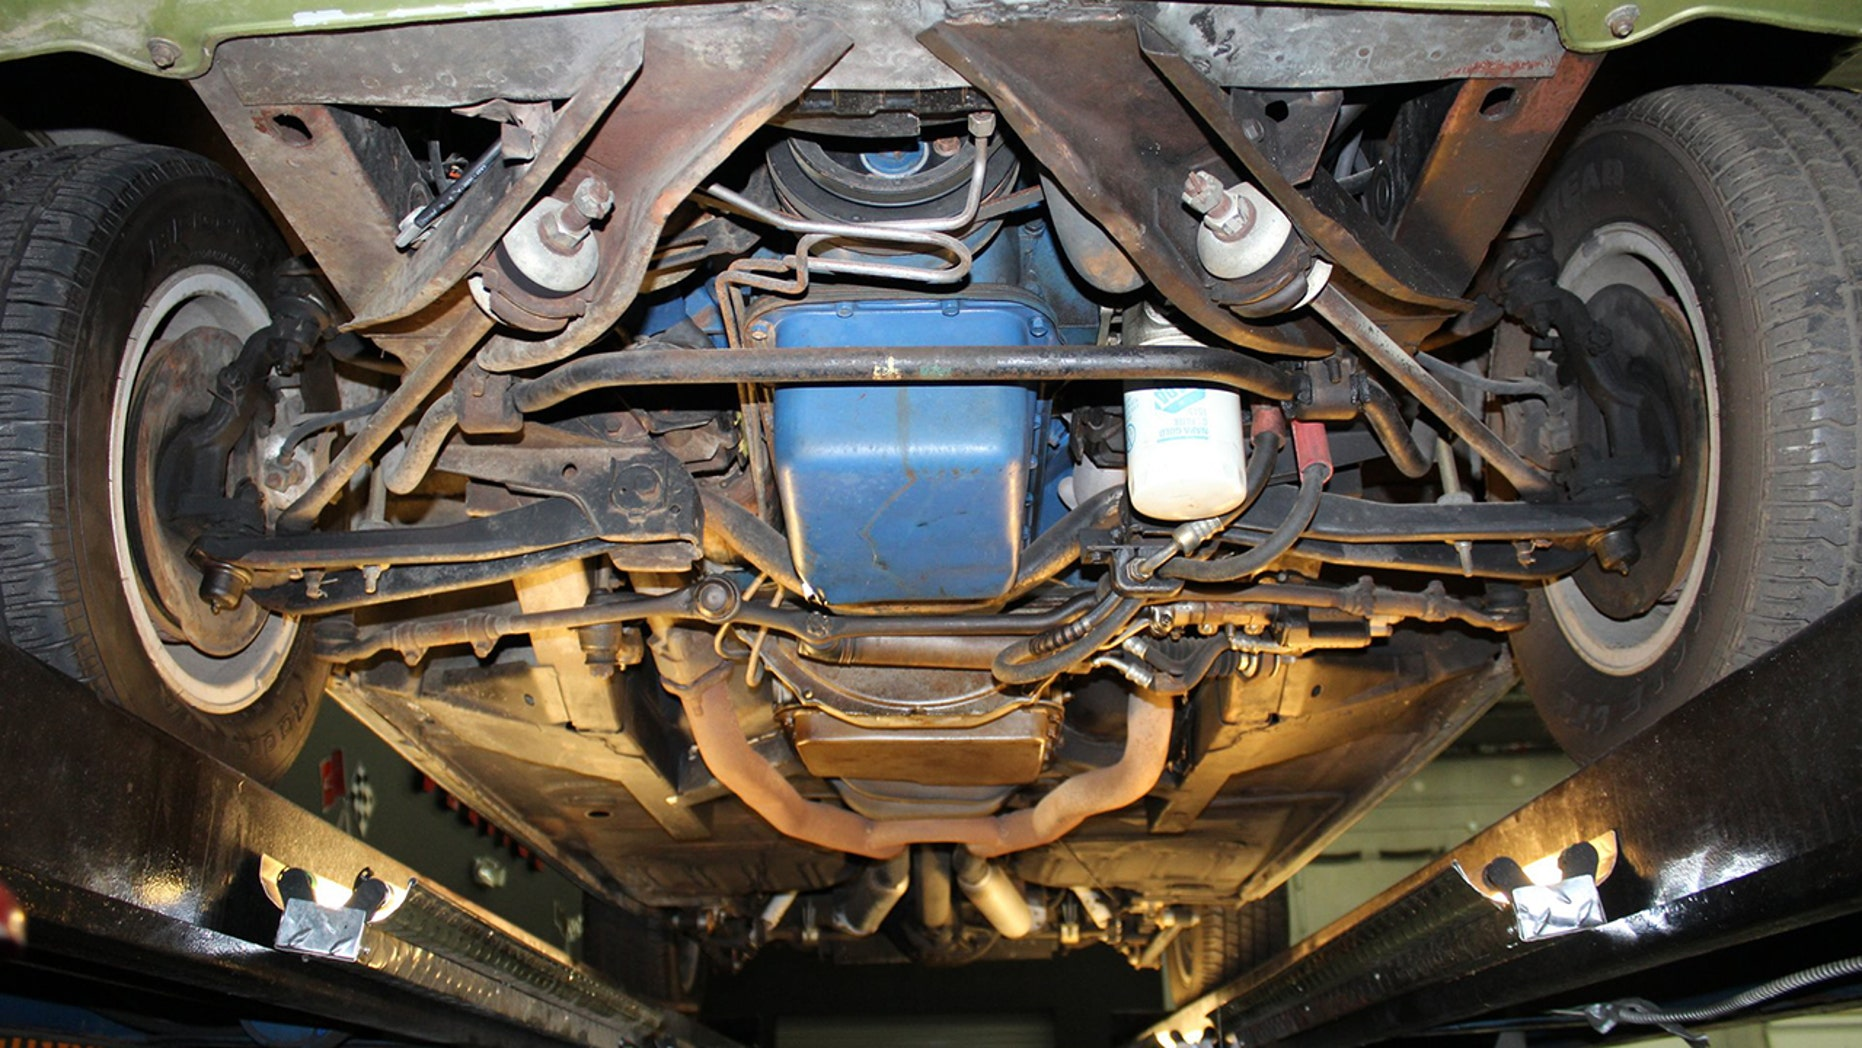 1968 Shelby GT500 undercarriage